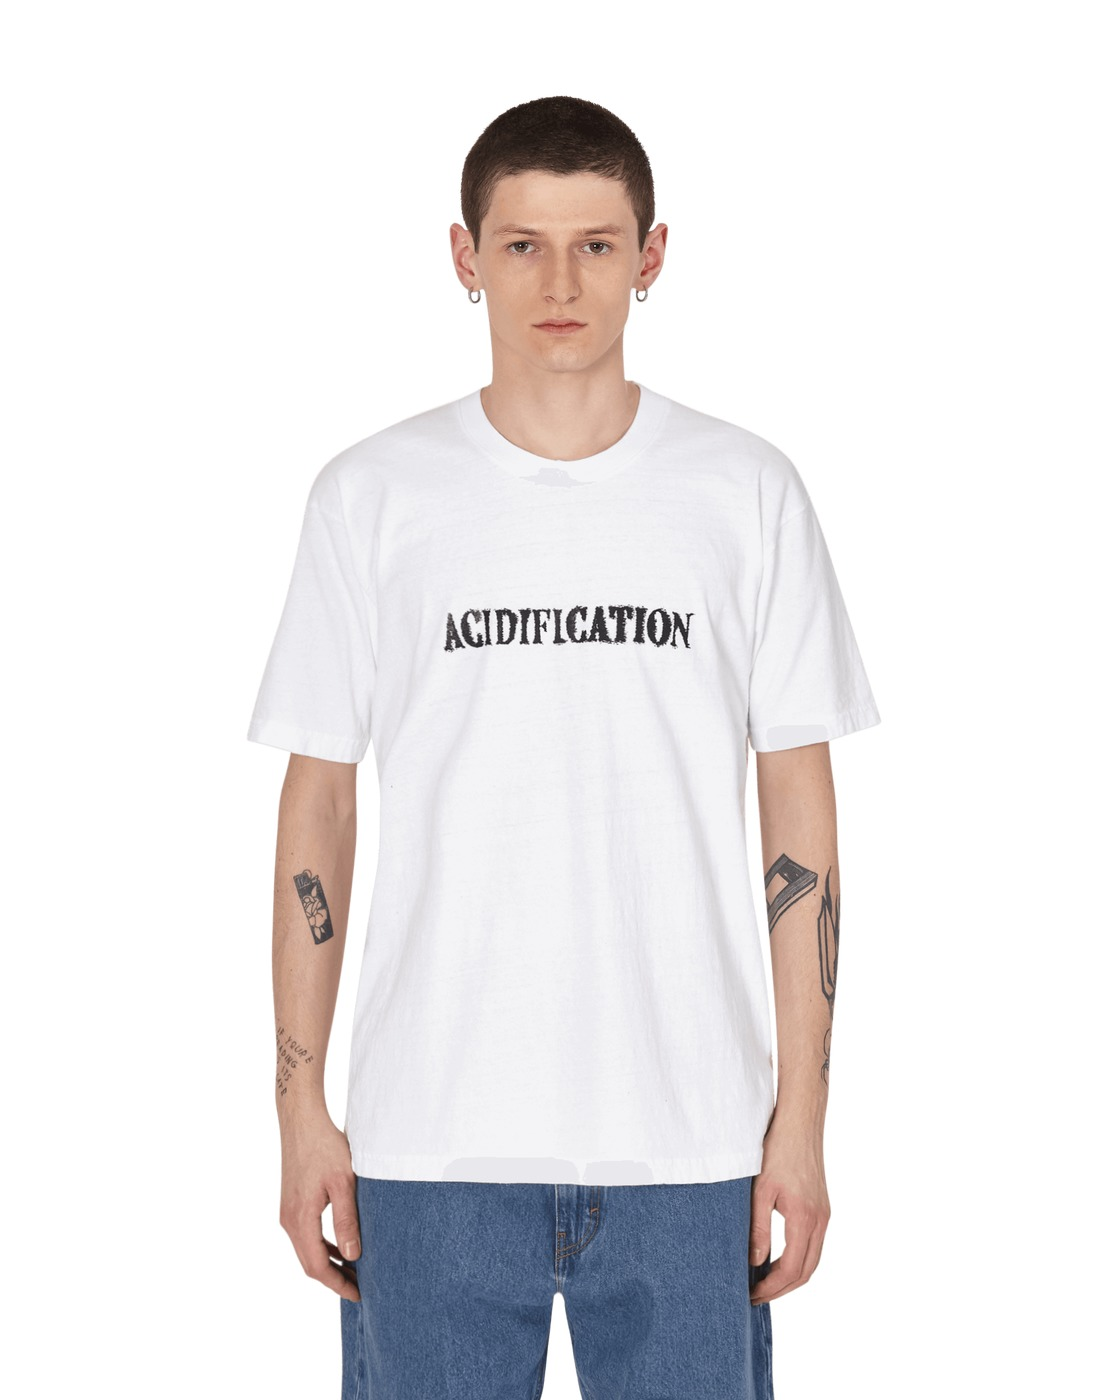 Eden Power Corp Accidification Recycled T Shirt White